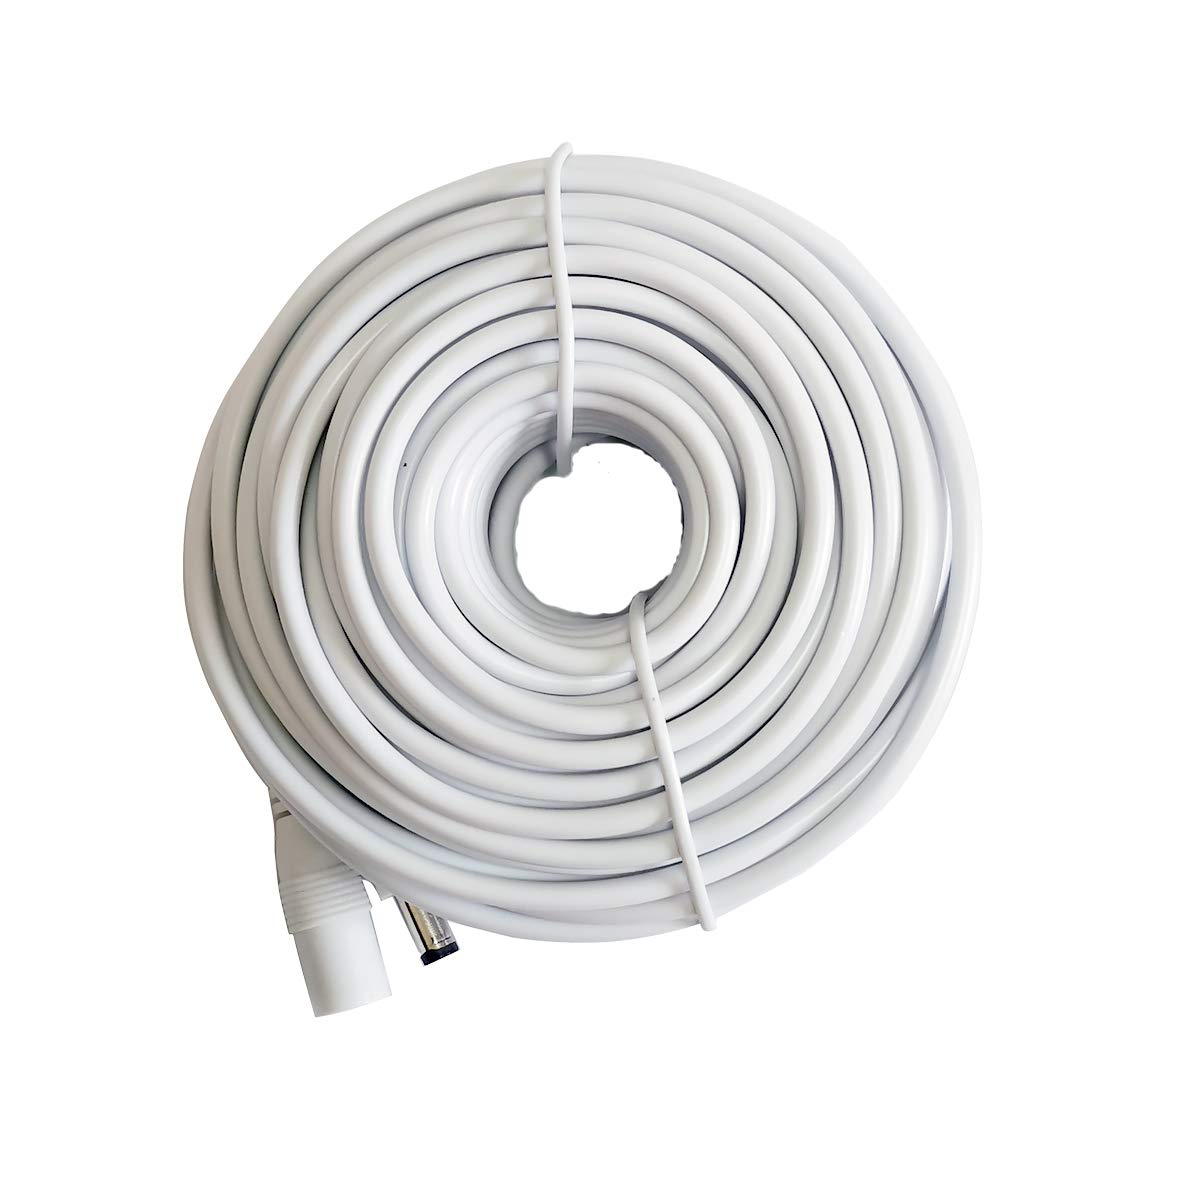 12V DC Power Extension Cable 2.1mm x 5.5mm Plug Universal Extension Cords Cable Compatible with 12V Power Adaper for Home Security IP Camera 50ft (15M) White